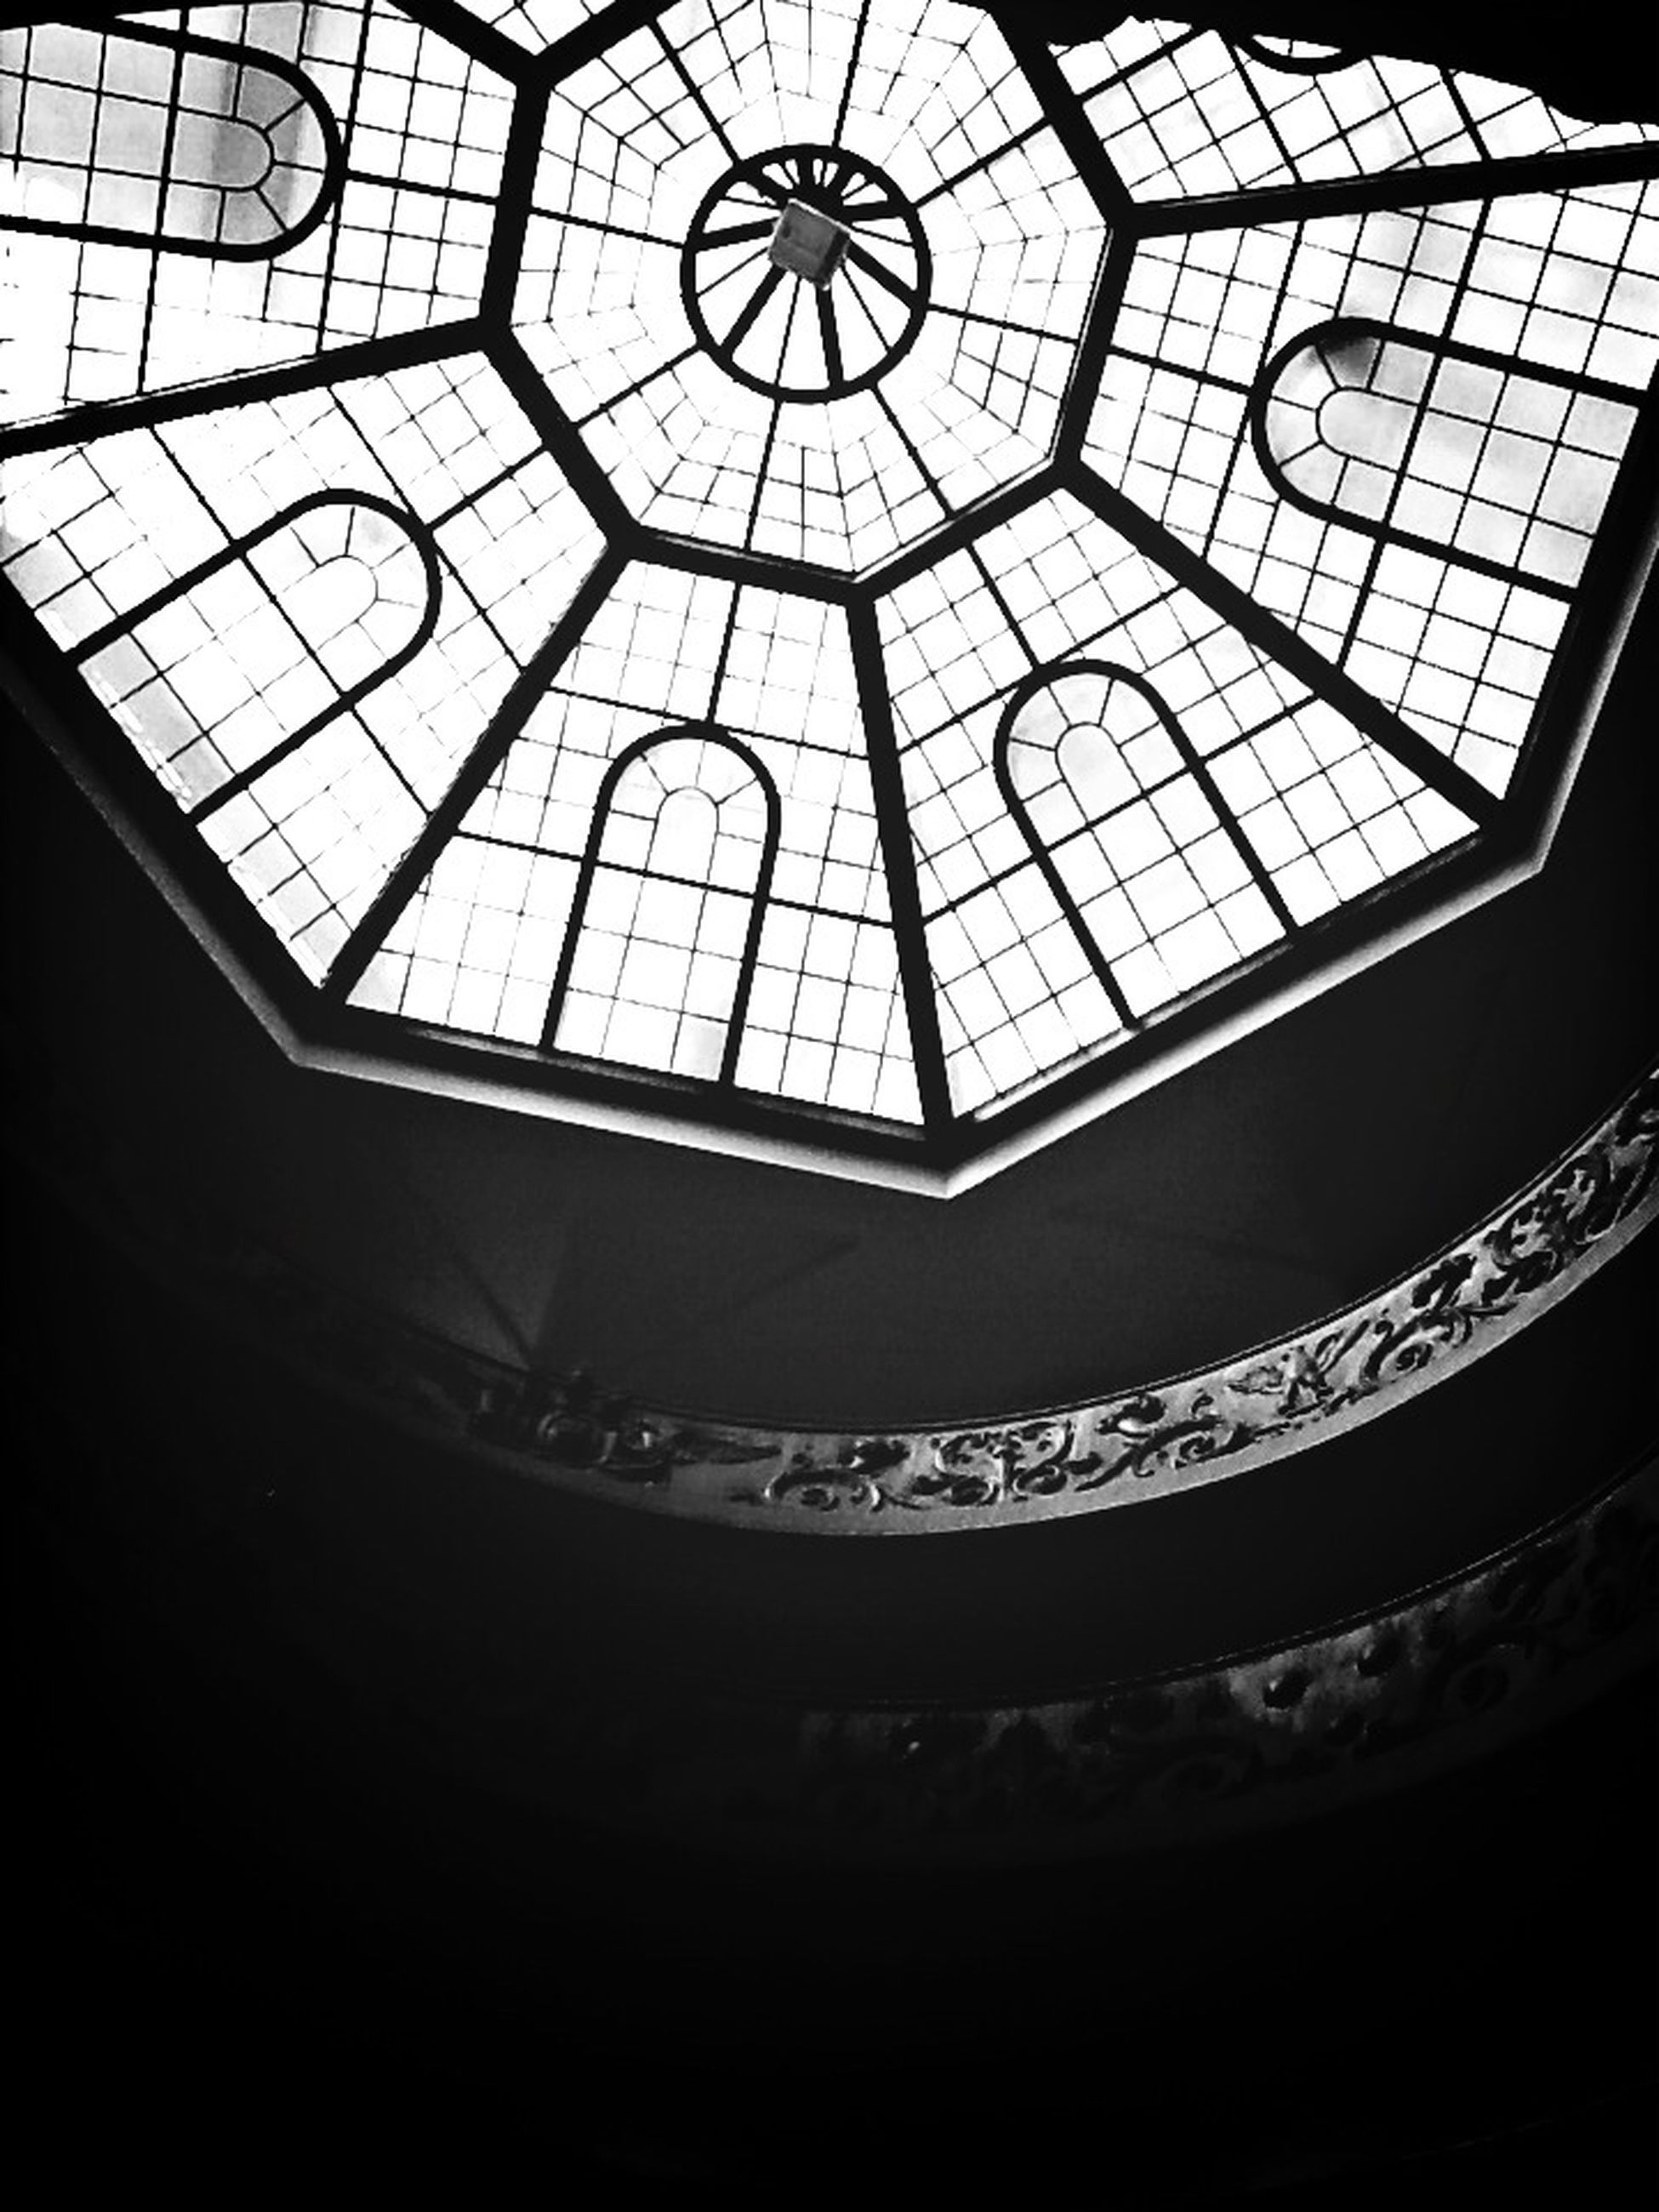 indoors, ceiling, low angle view, pattern, skylight, design, architecture, built structure, window, glass - material, directly below, architectural feature, geometric shape, silhouette, no people, interior, transparent, backgrounds, metal, illuminated